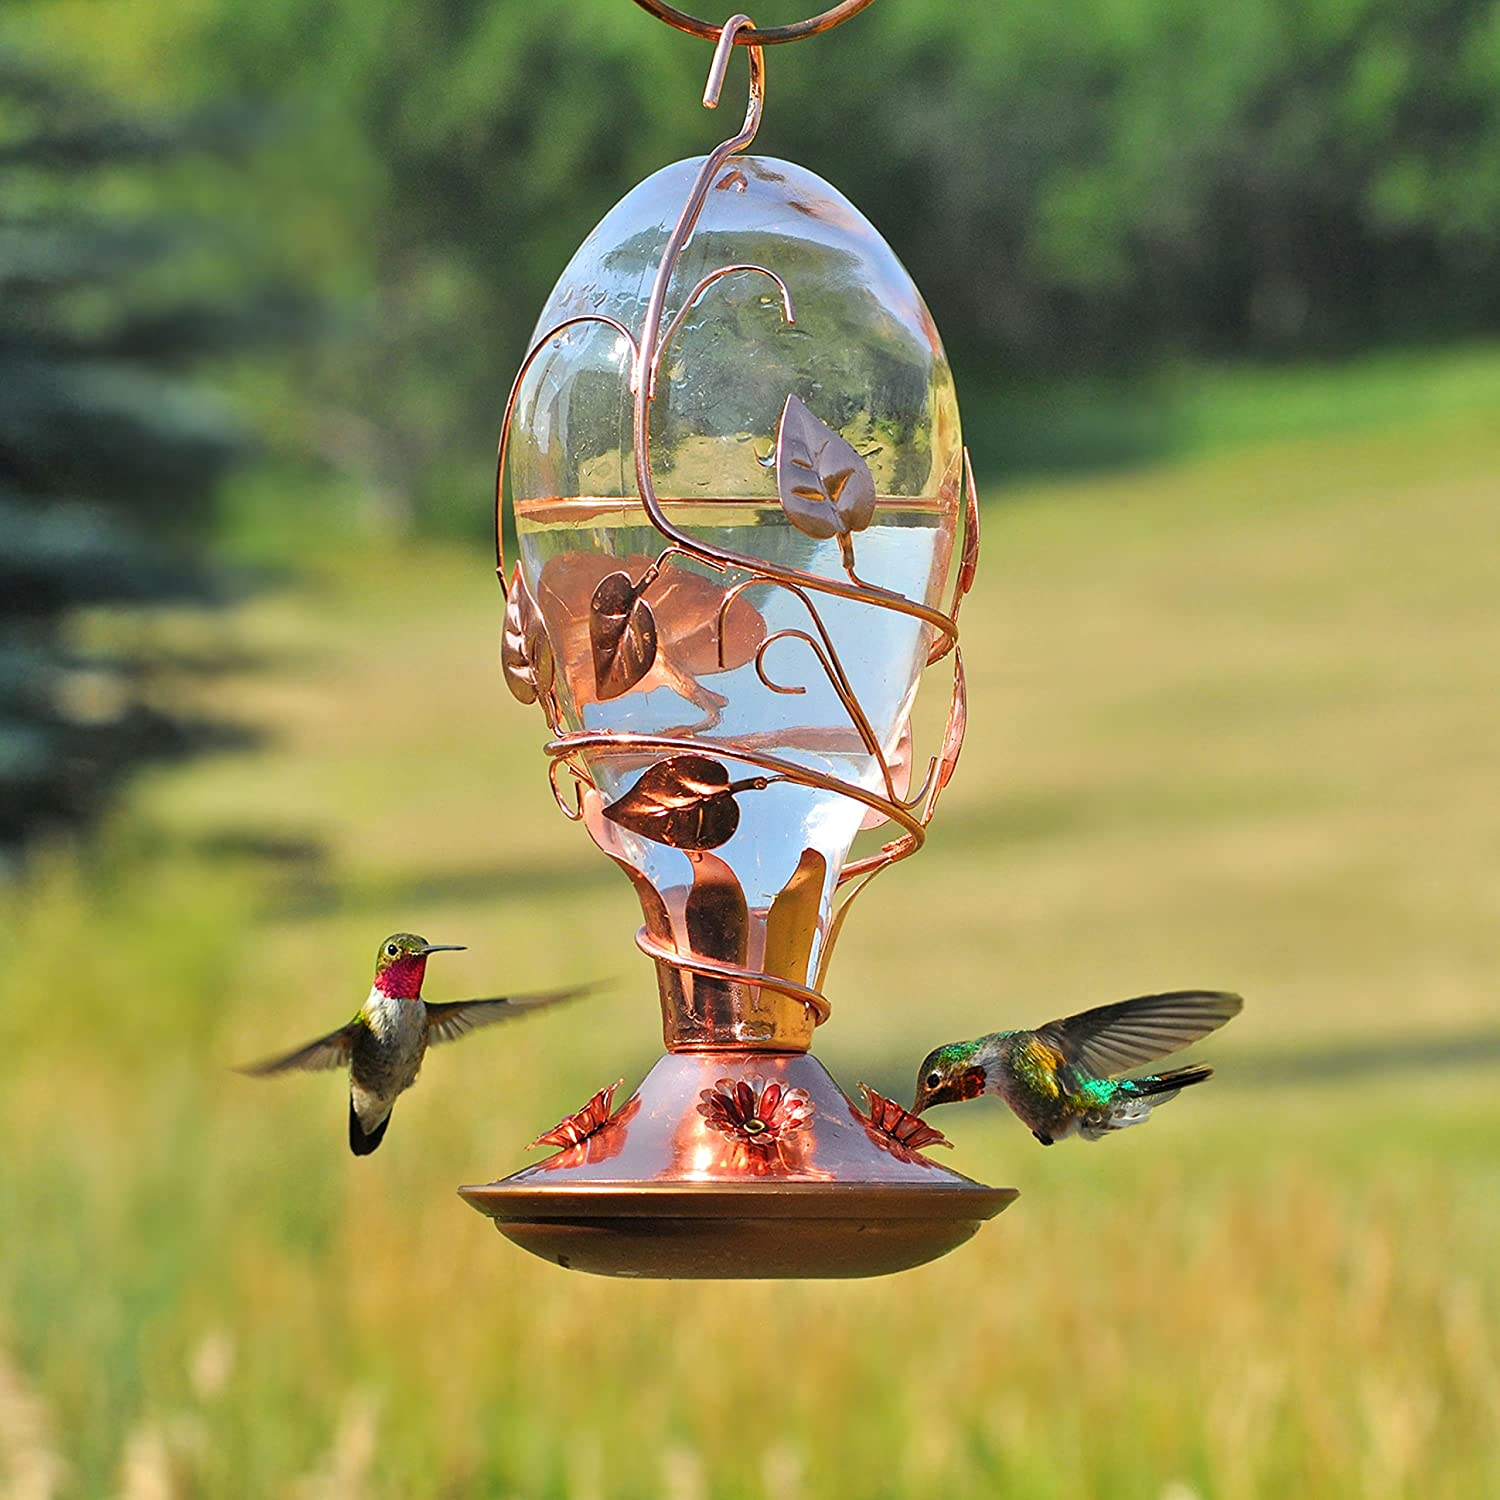 s turns the a feeding hanging sphere mosaic bird area product page this file shop outdoor hummble metal hummingbird favorite any wild bold birds feeder into garden spot